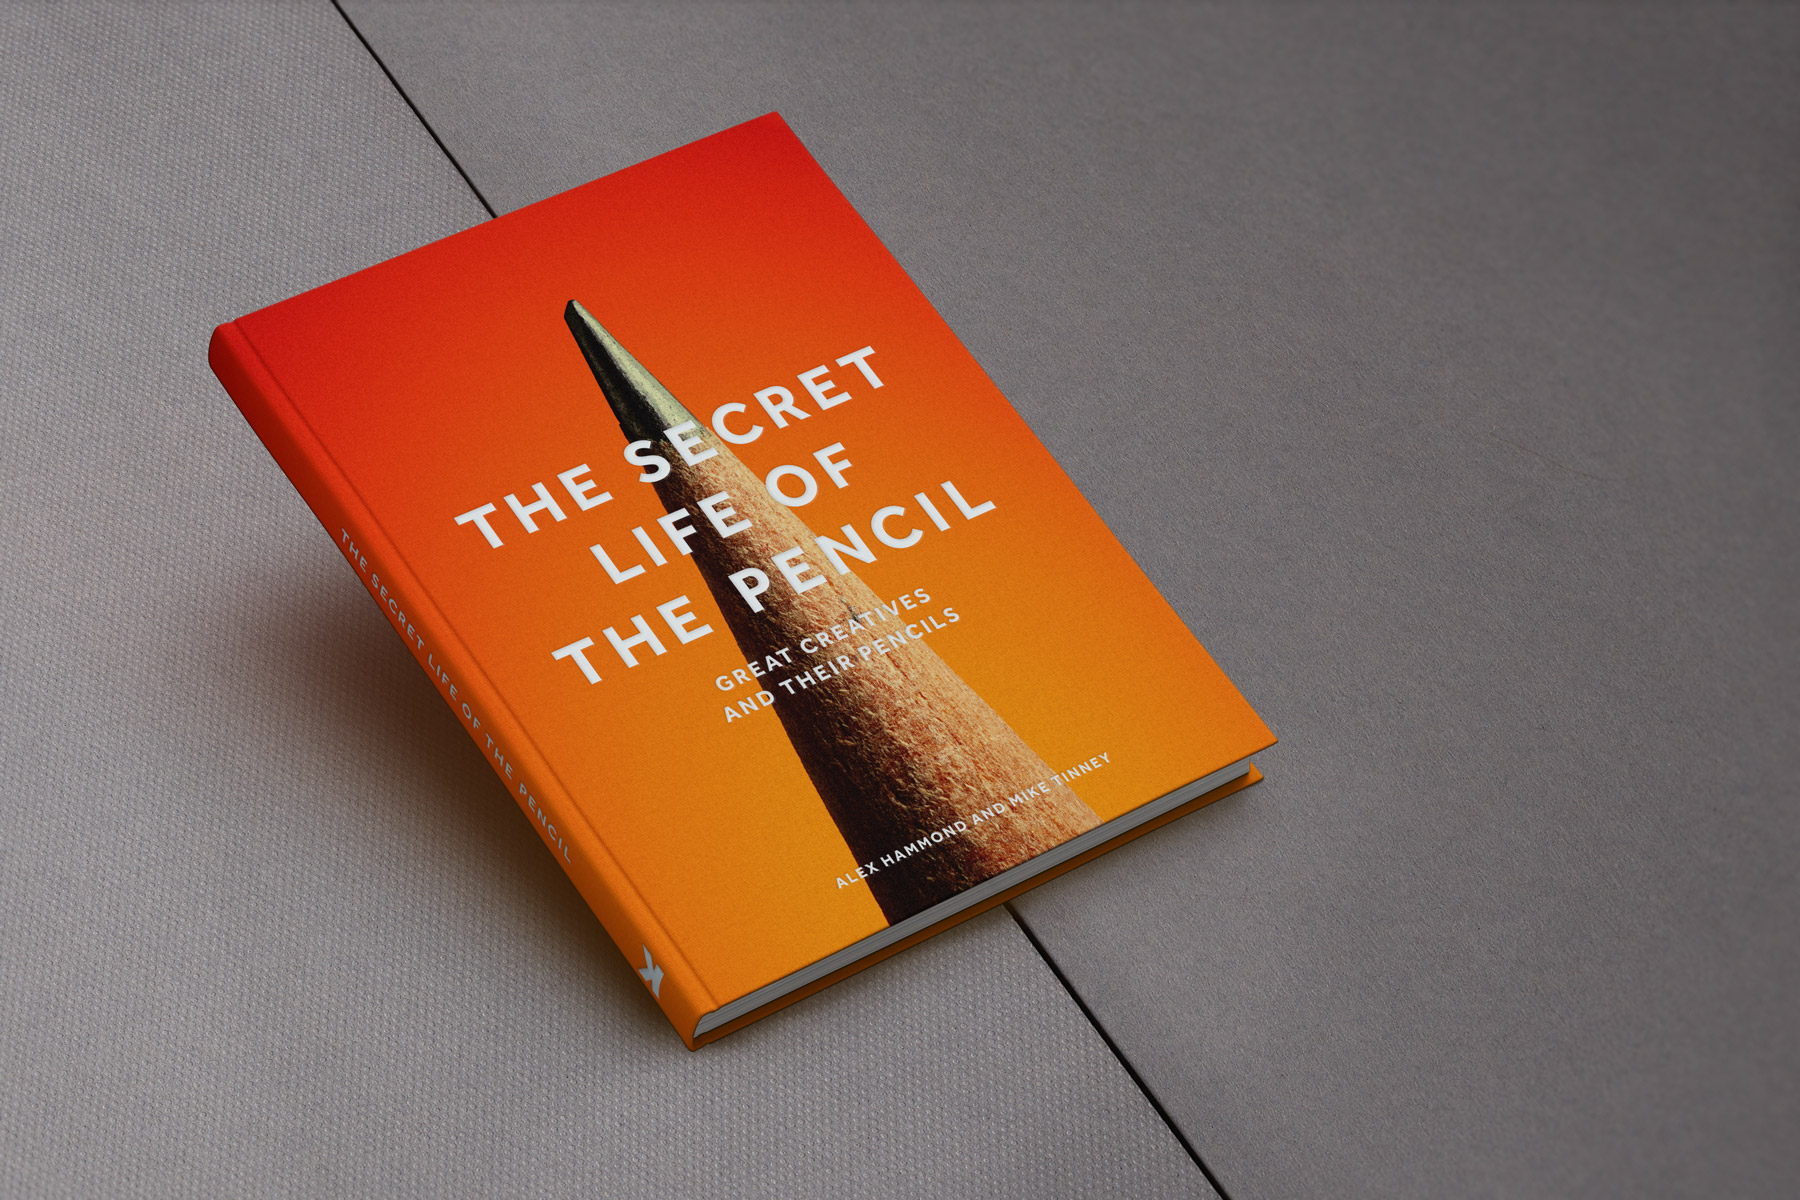 Secret Life of the Pencil Book